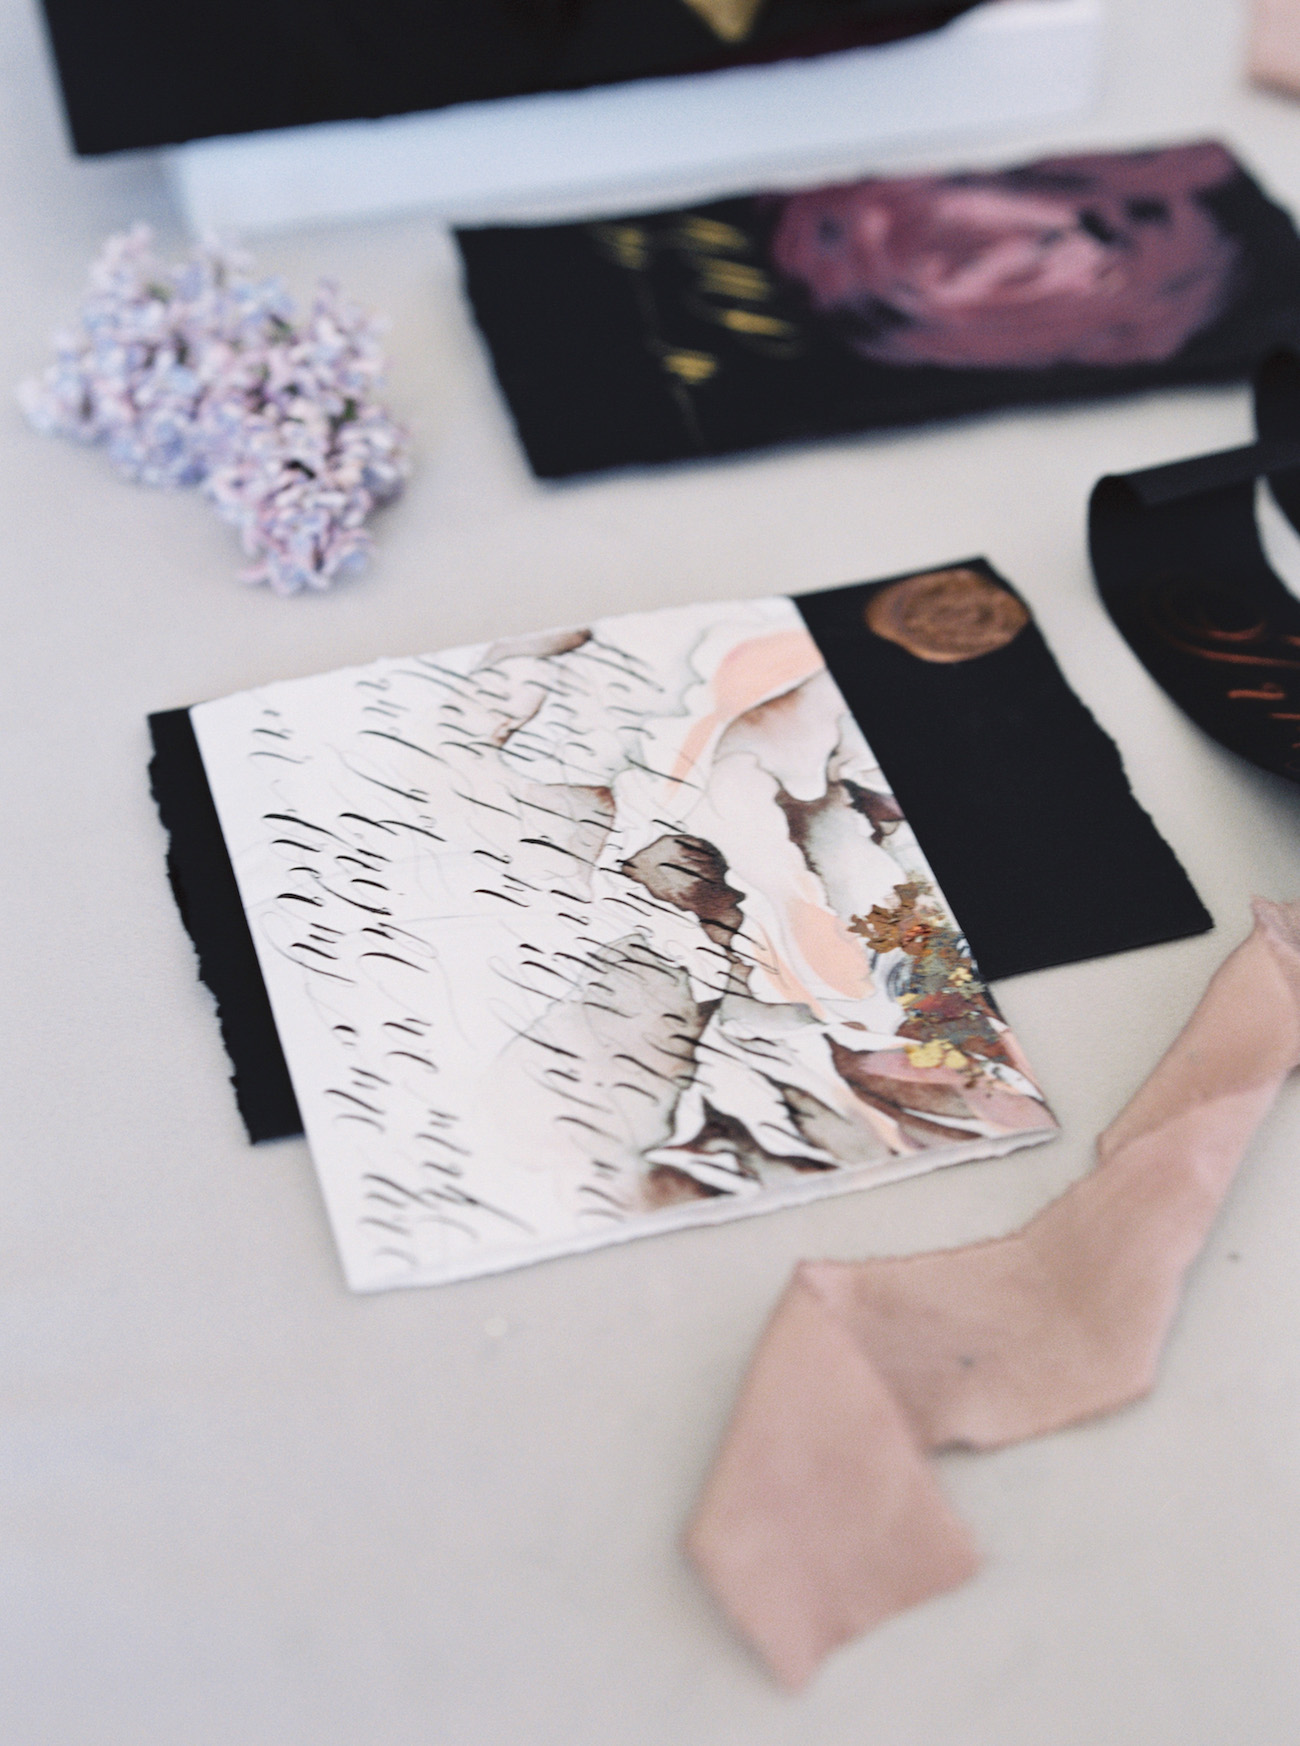 Latest Wedding invitation trends for 2019 - white and blush Invitation wrap with black calligraphy